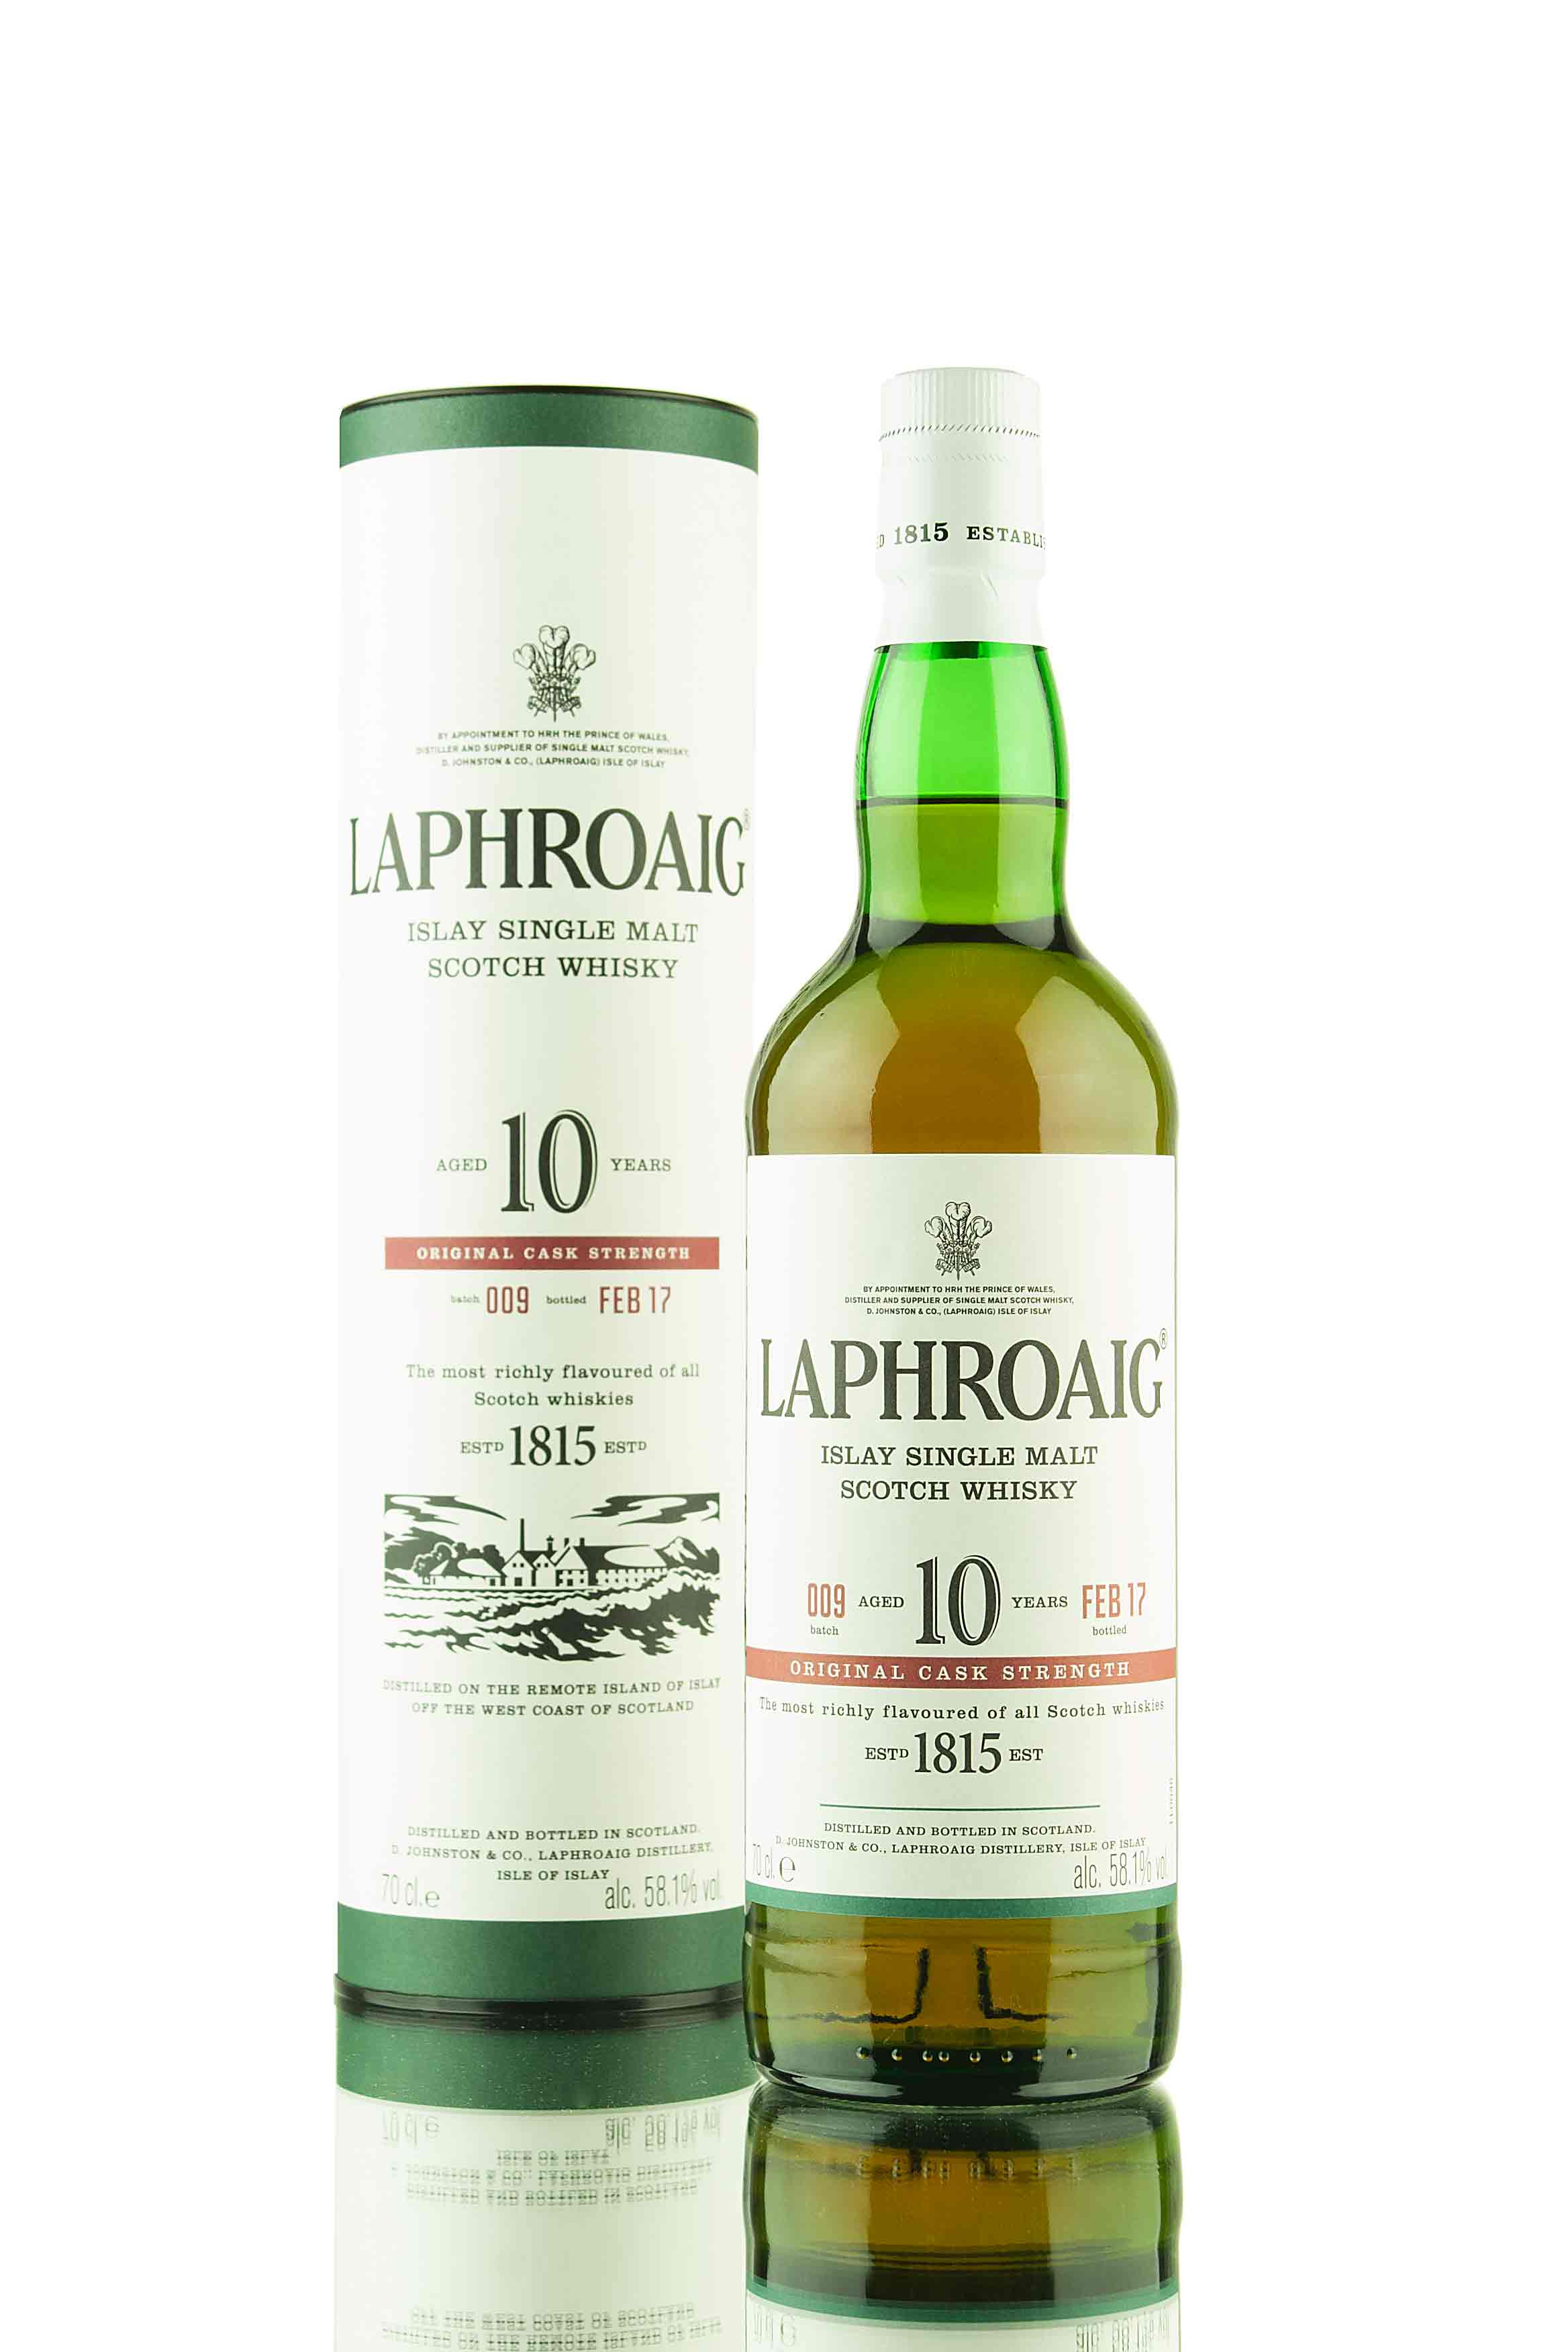 Laphroaig 10 Year Old Cask Strength Batch 009